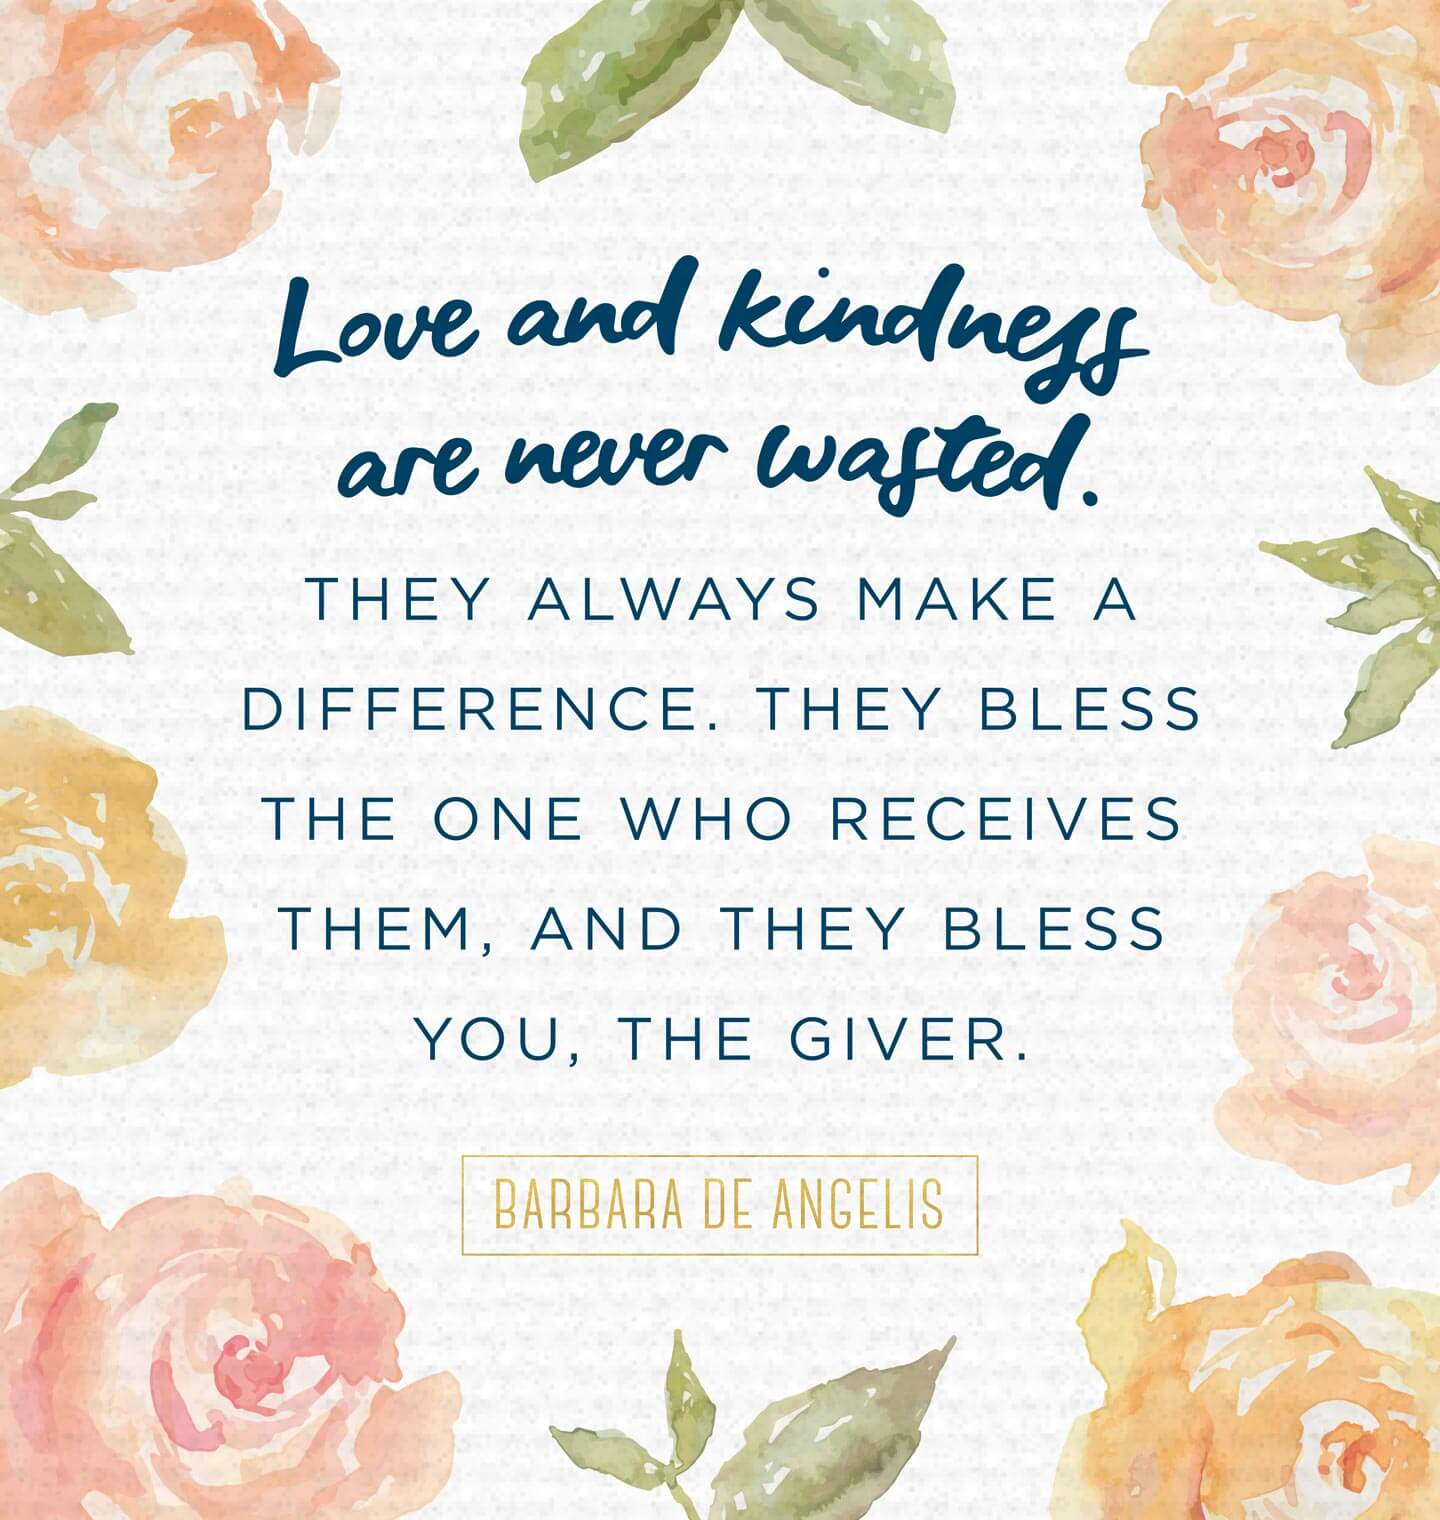 love and kindness are never wasted